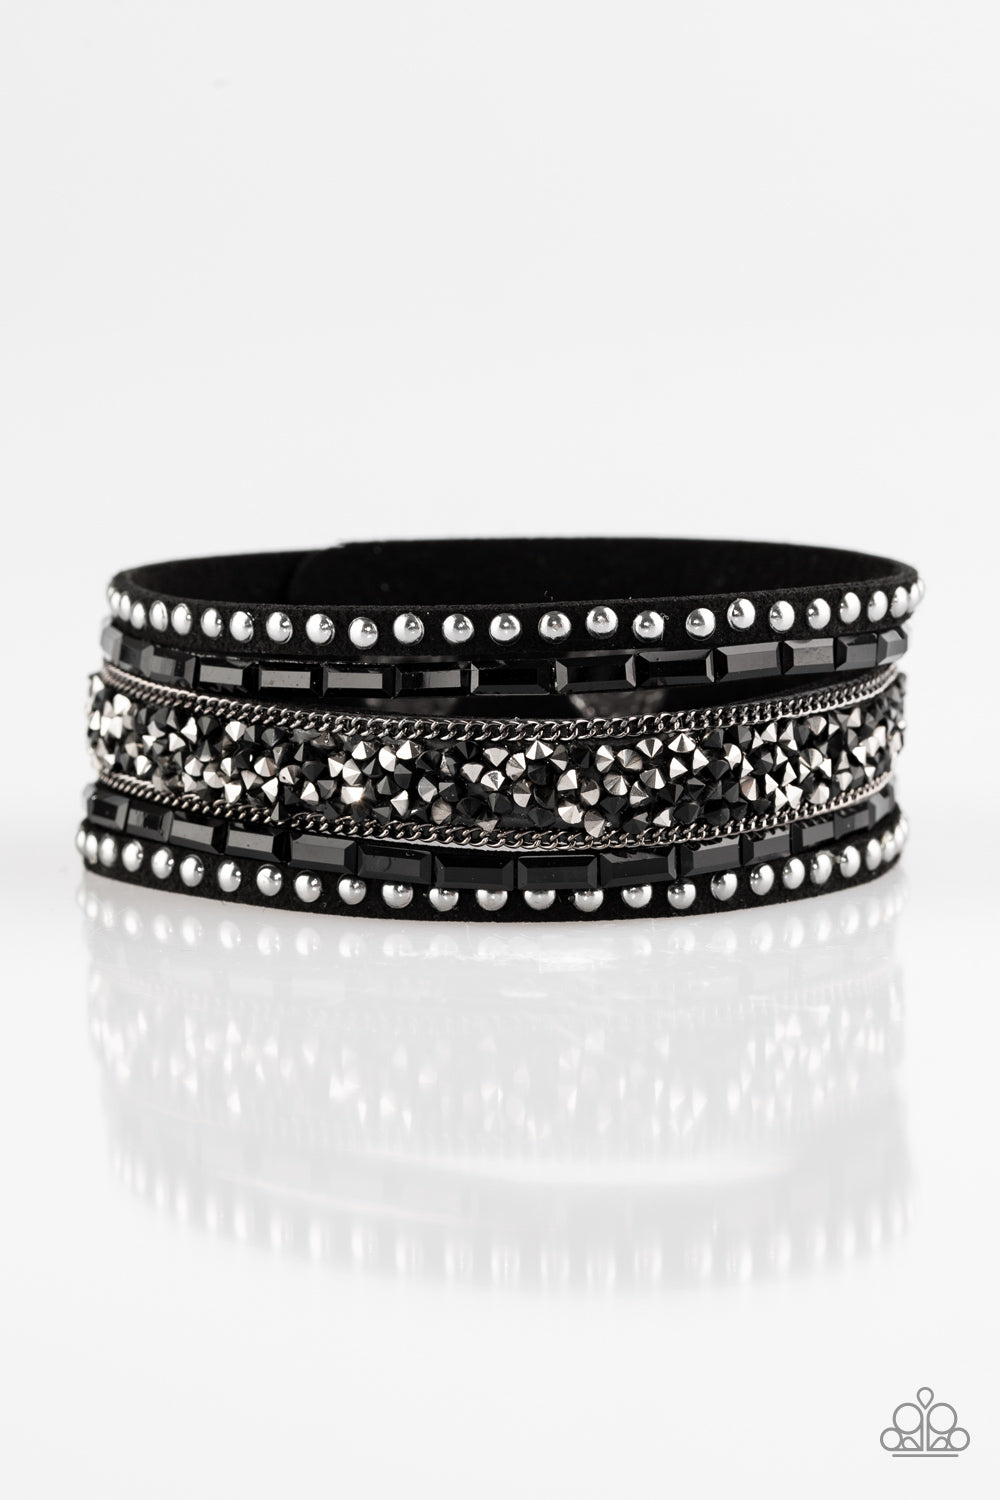 five-dollar-jewelry-rhinestone-rocker-black-9393-paparazzi-accessories